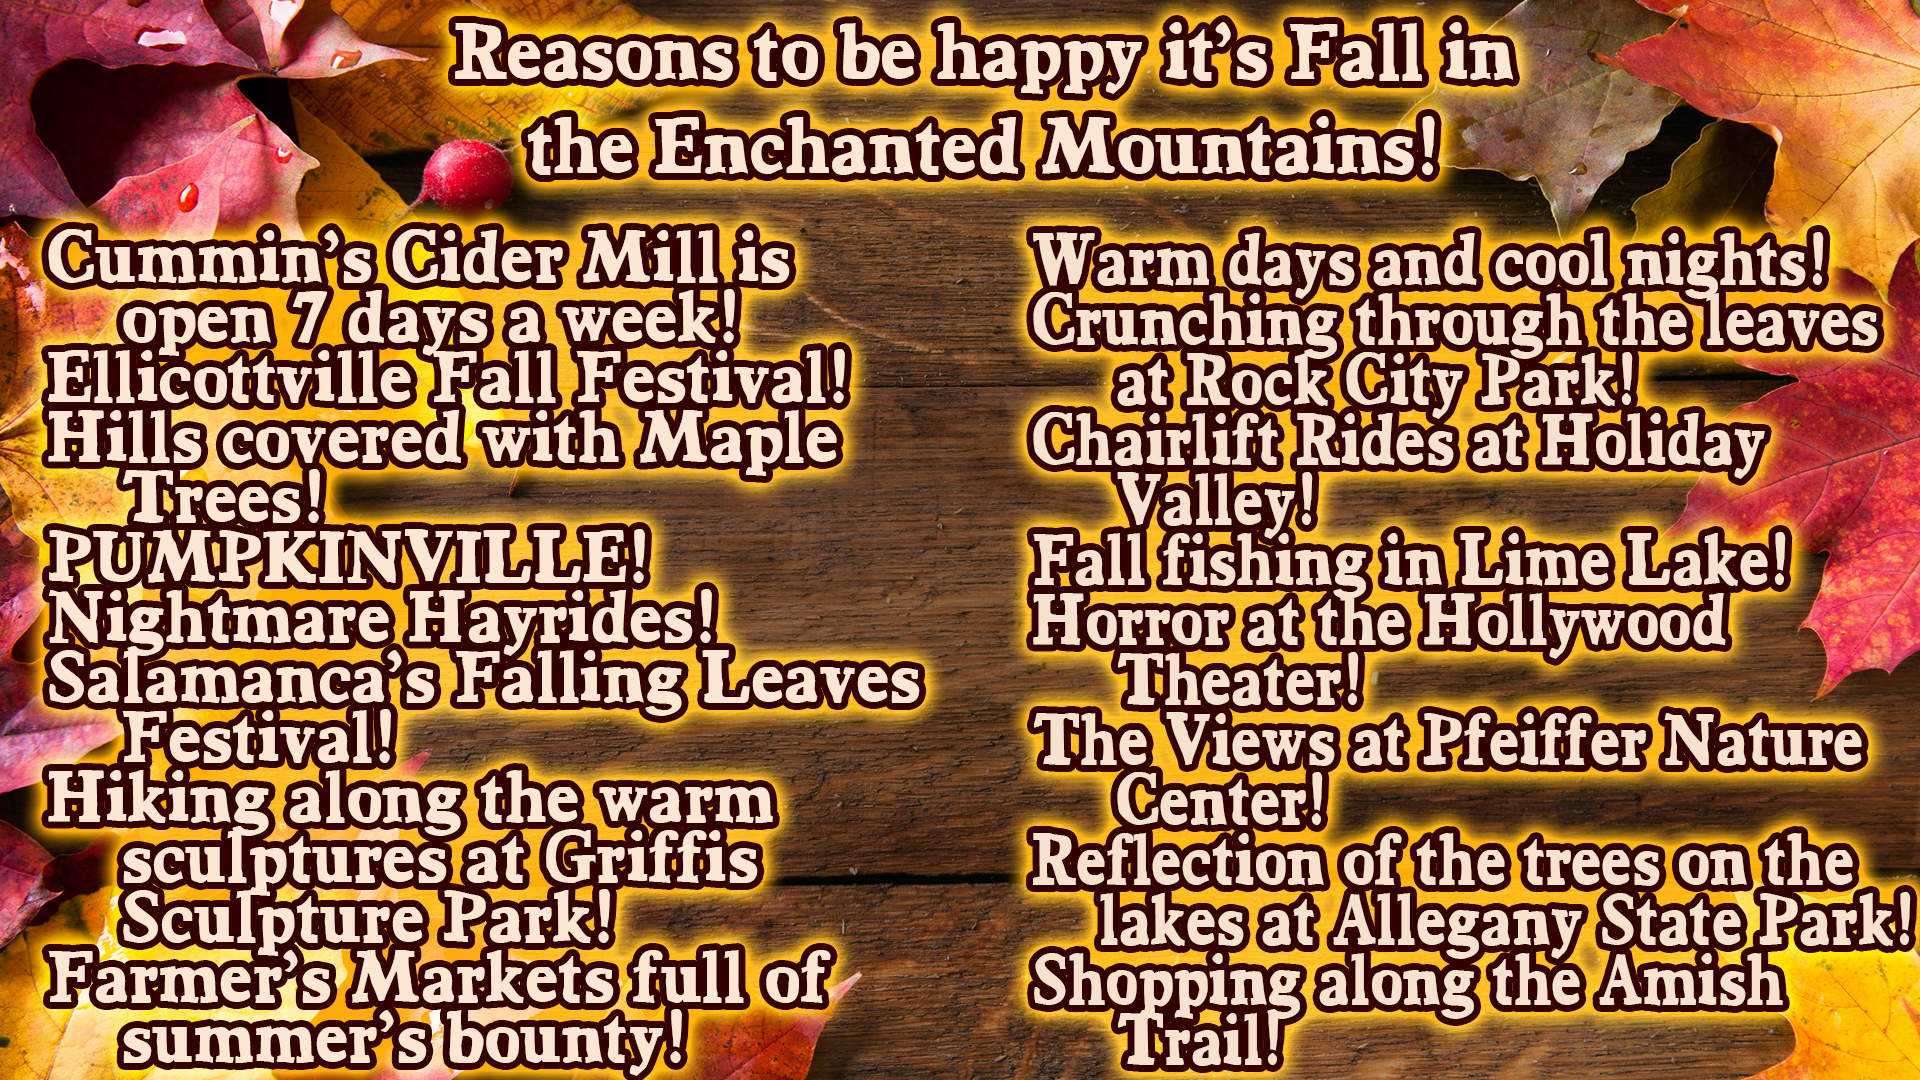 Reasons to be happy it's Fall in Enchanted Mountains